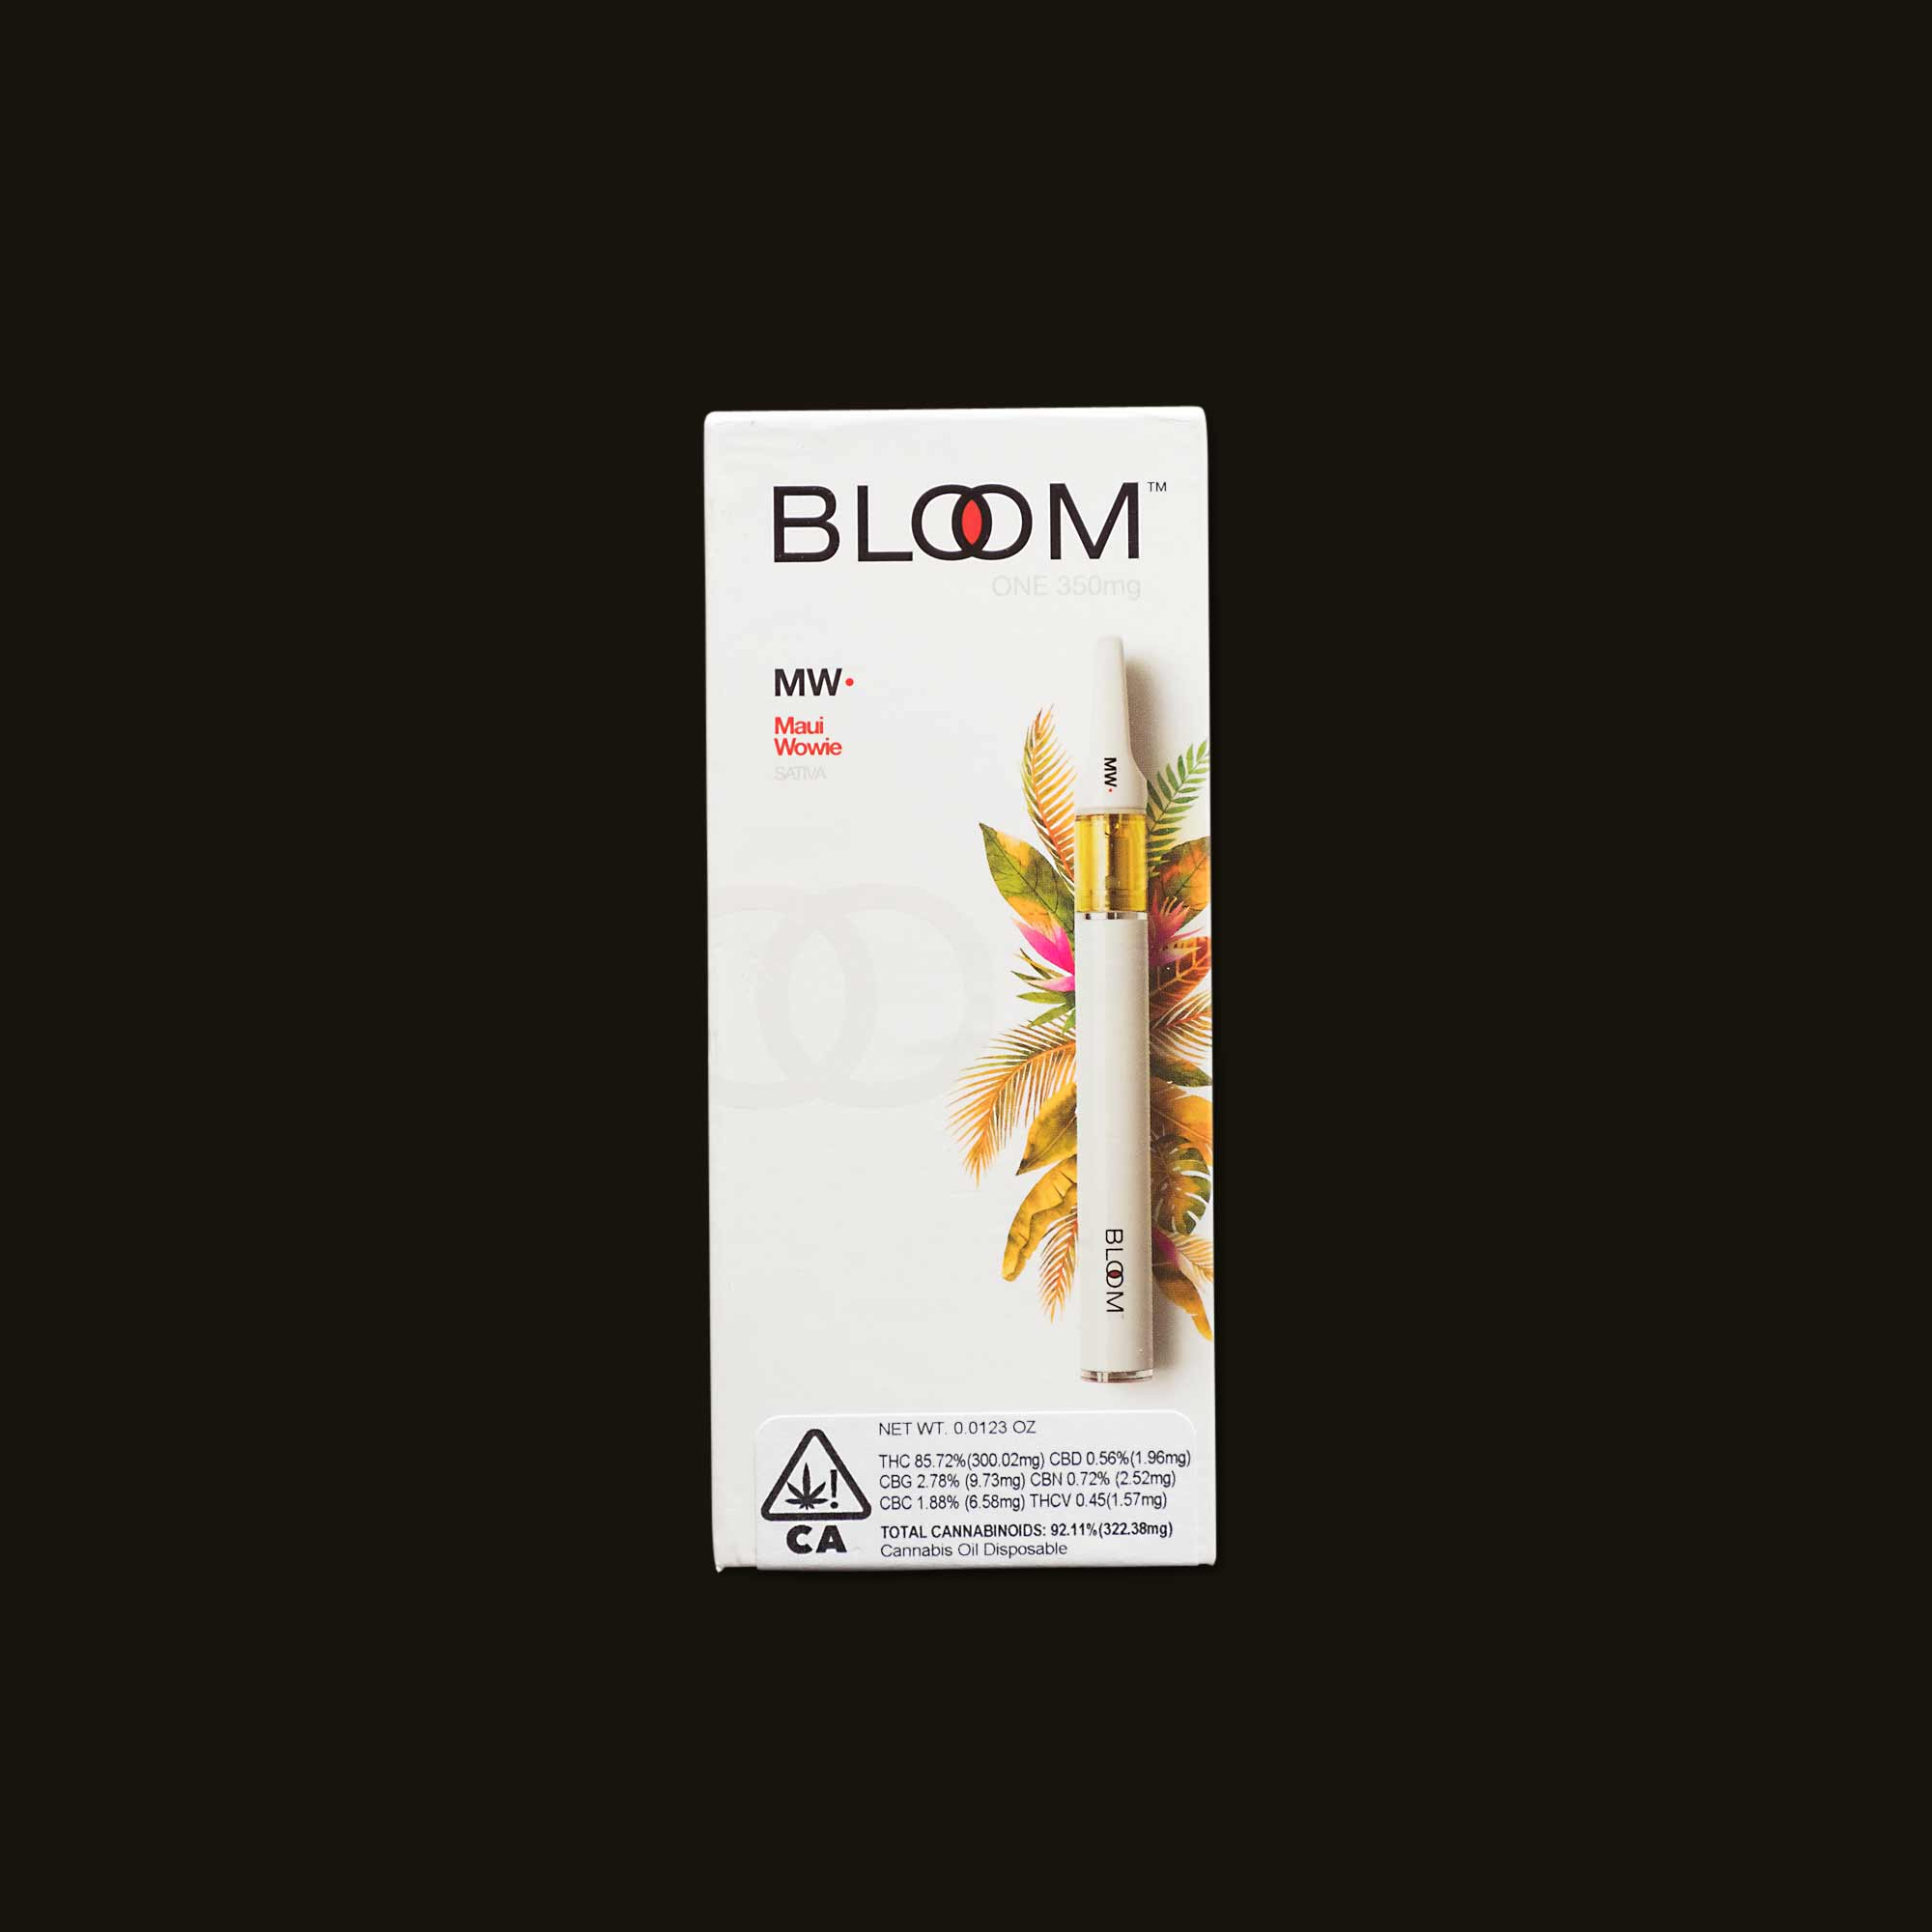 Maui Wowie Bloom One - 350mg disposable pen